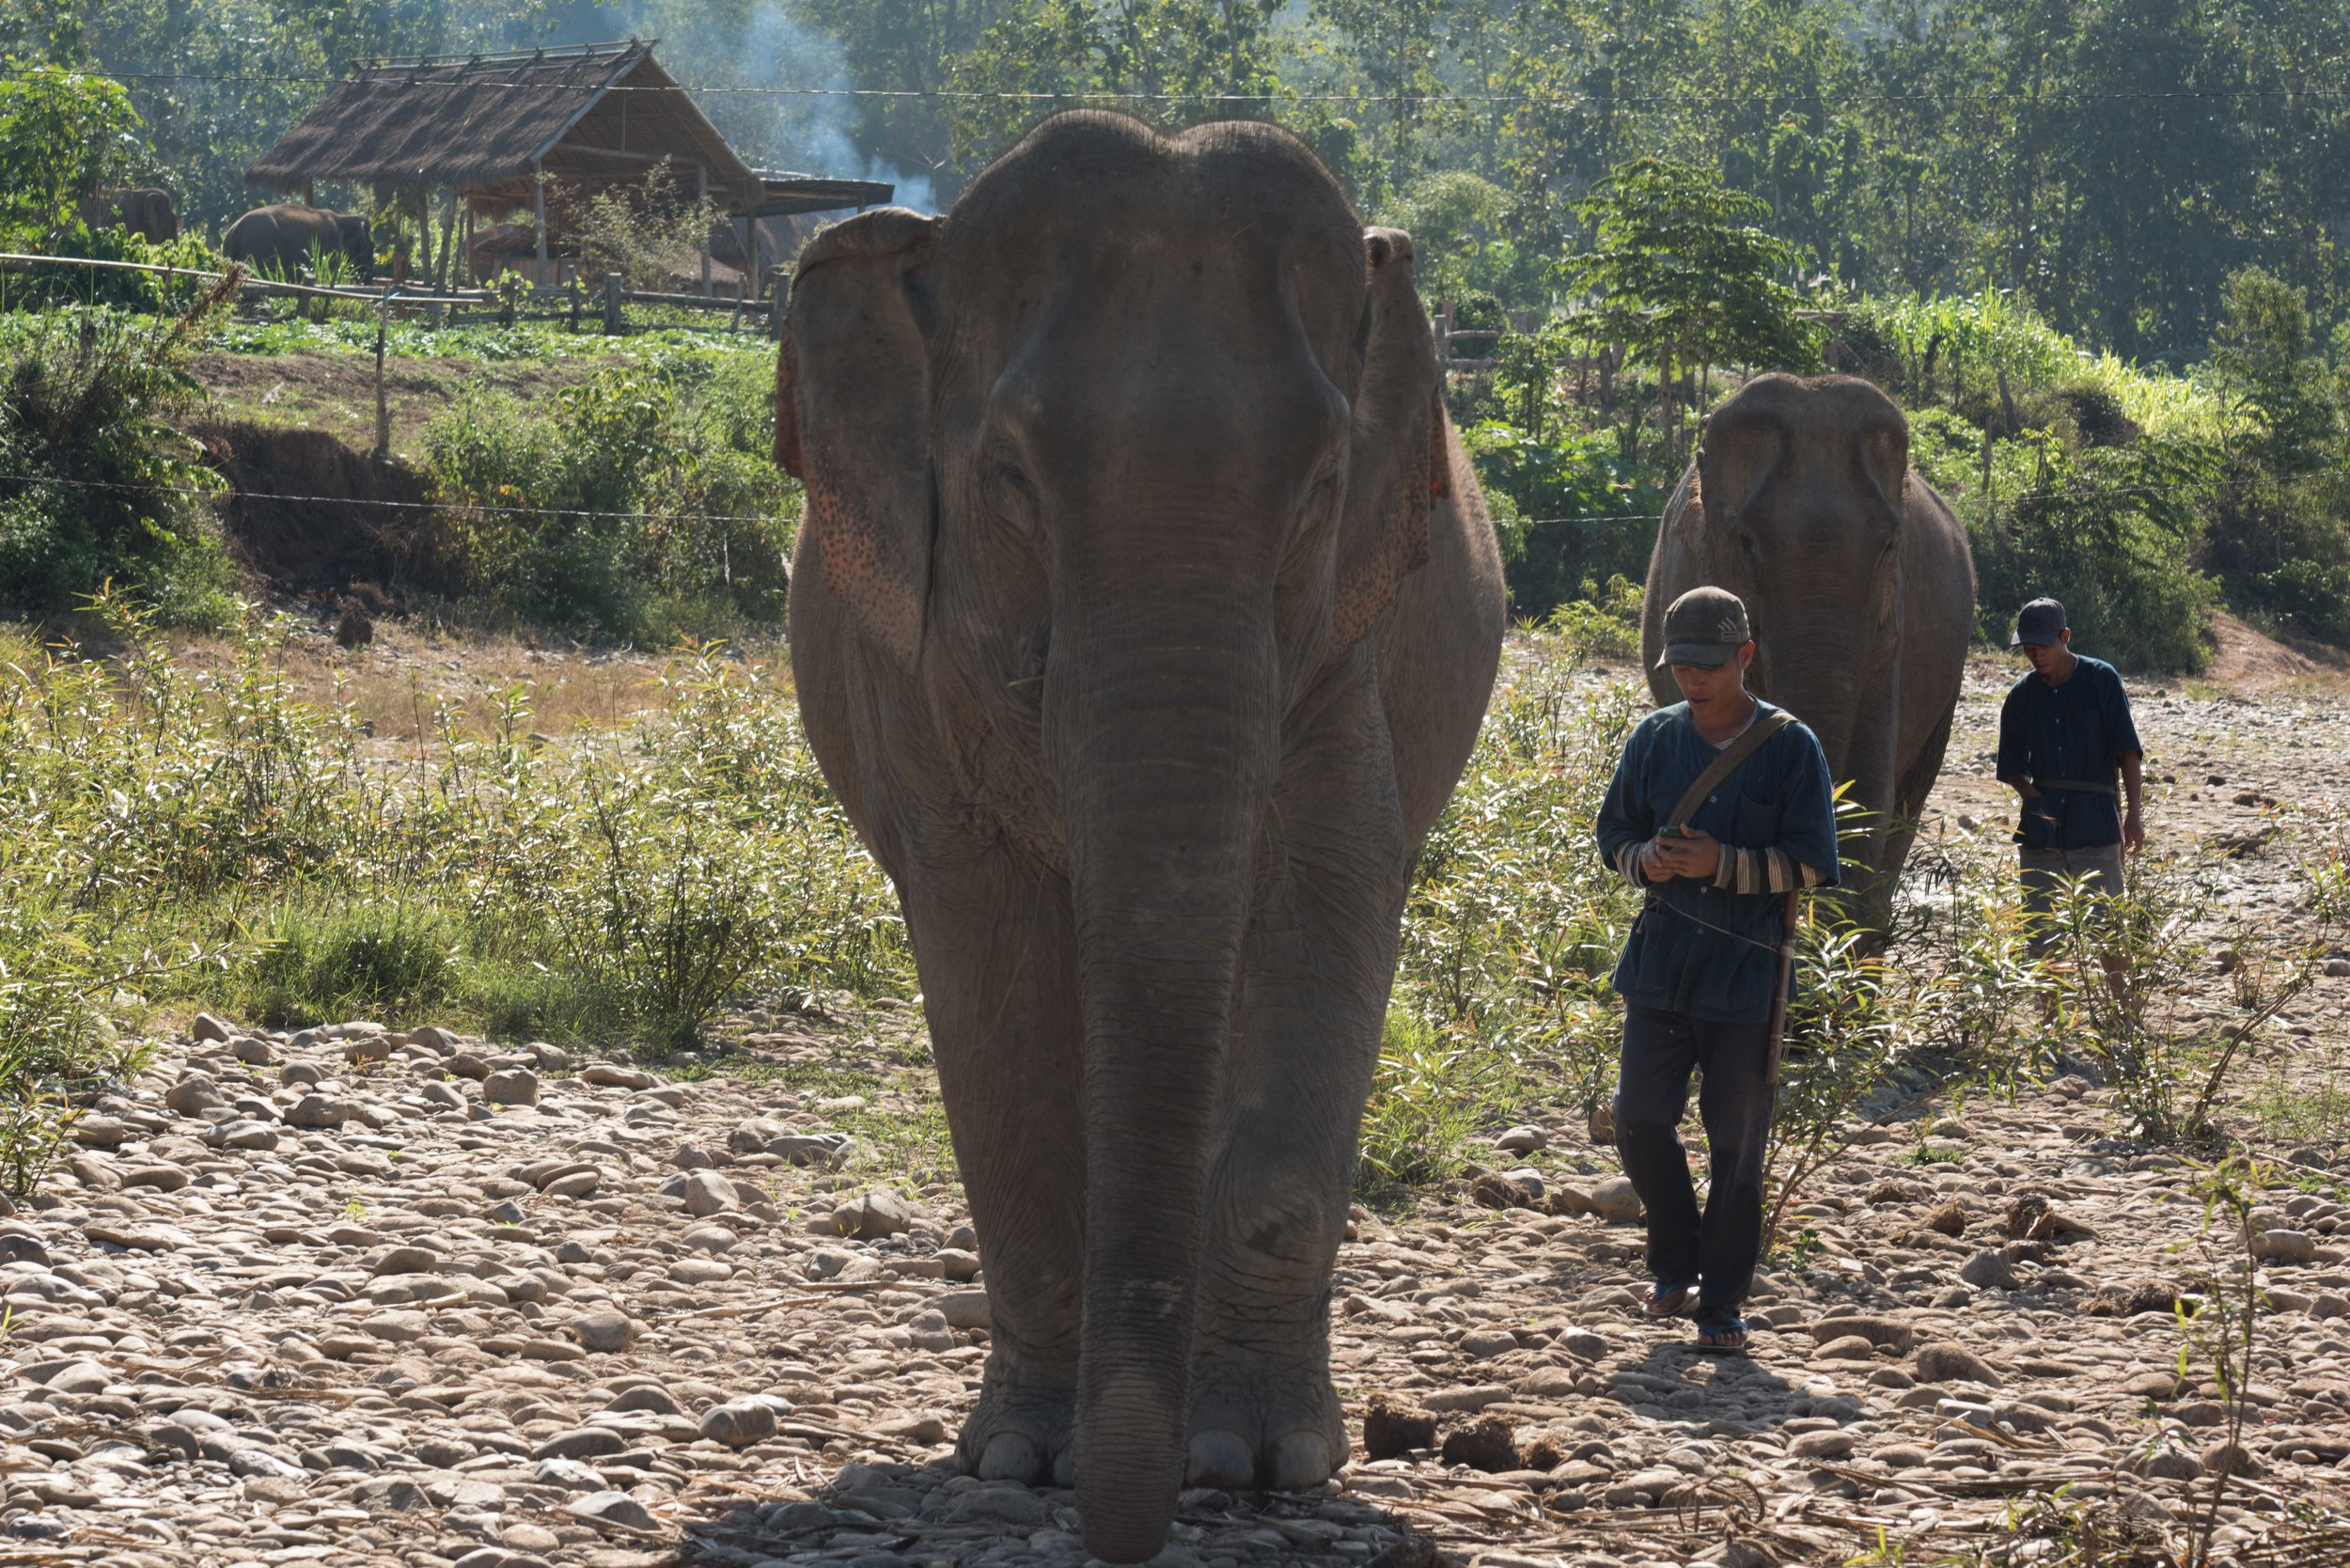 Elephants with carers, MandaLoa Elephant Conservation Park, Laos, 2 Dec 2017.jpg